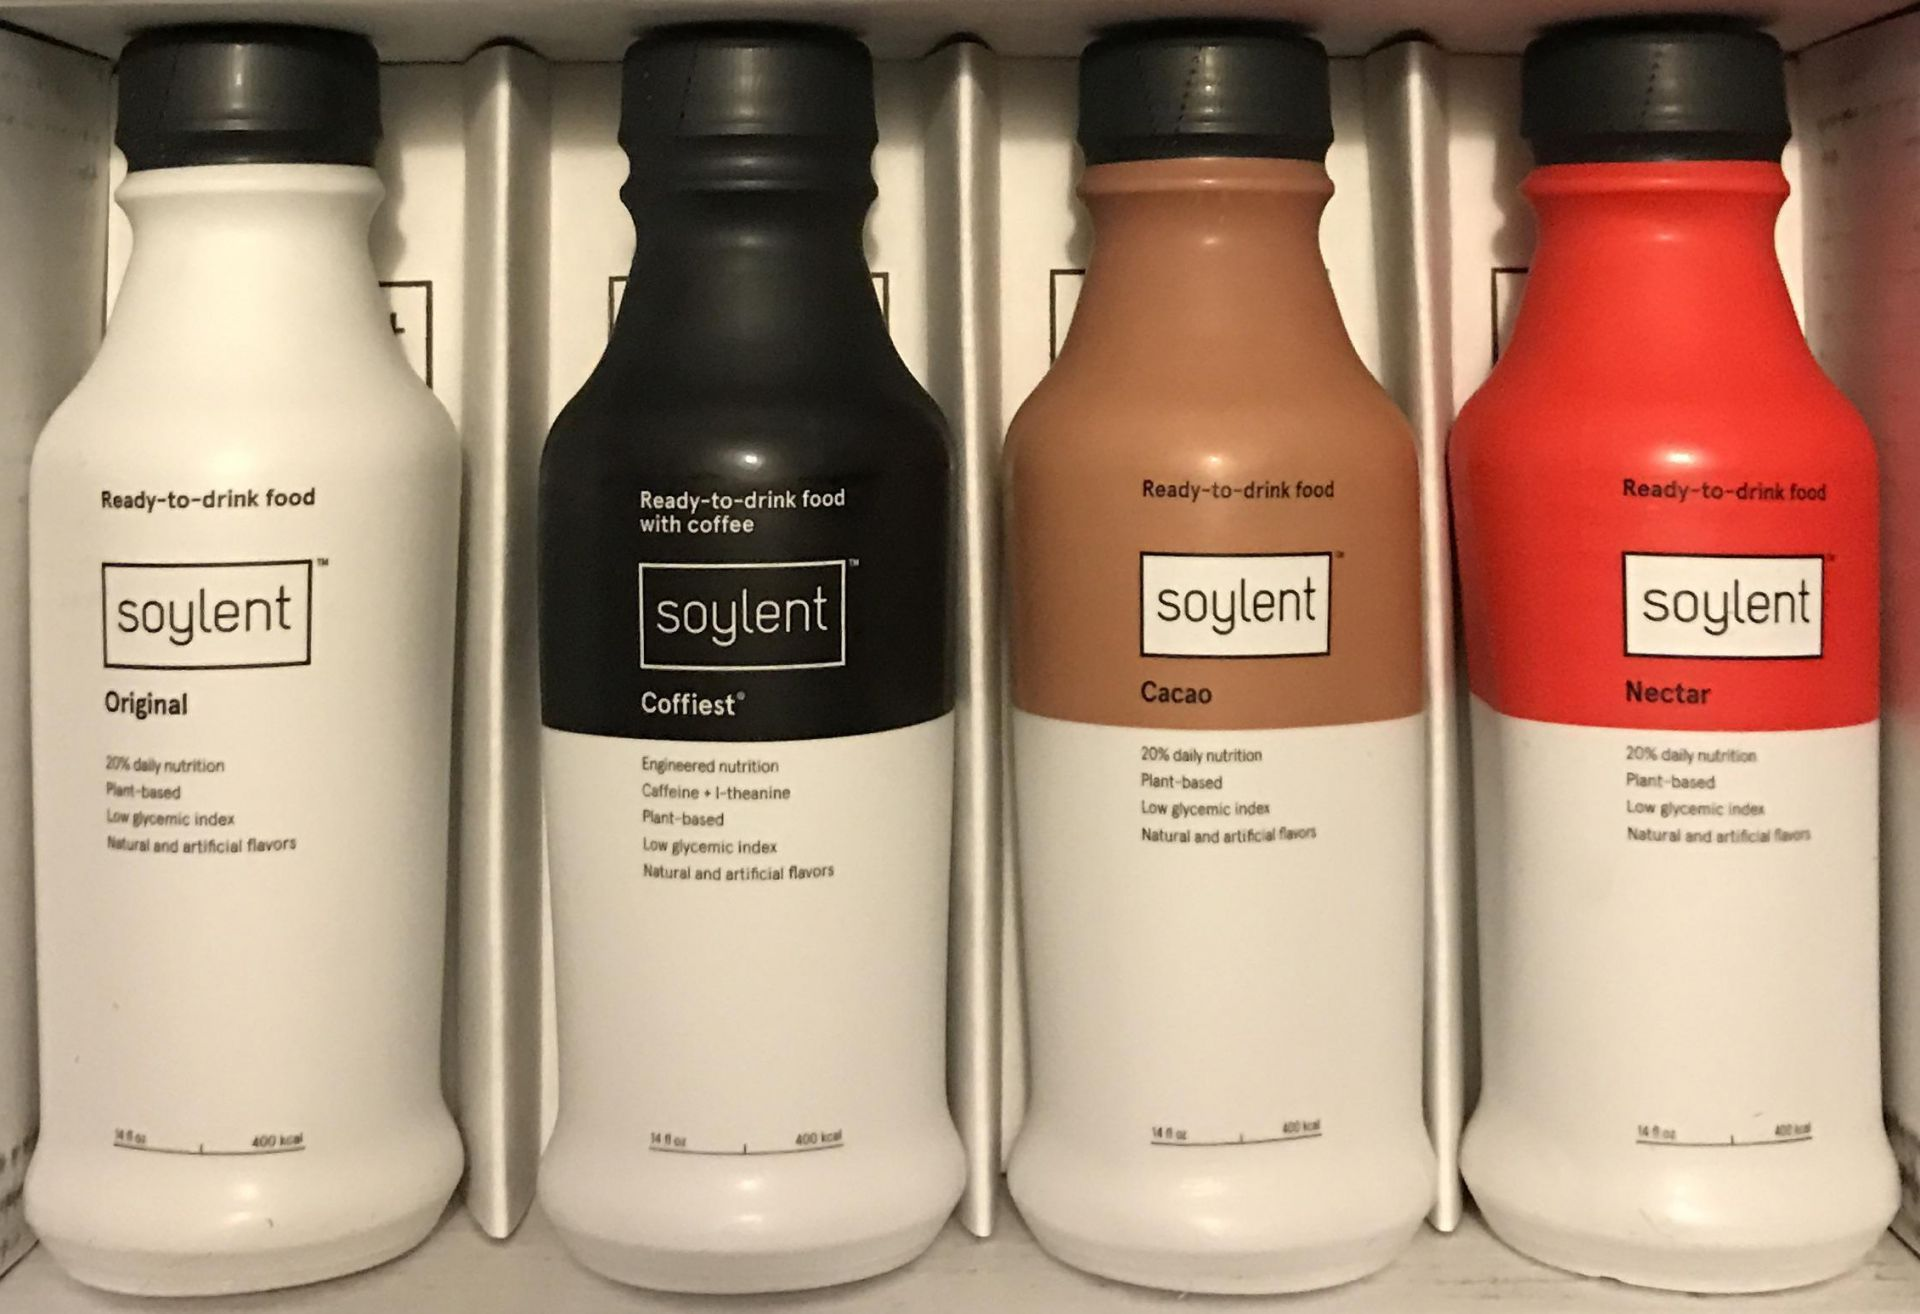 There is a food substitute intended to supply all daily nutritional needs, known as 'Soylent'.